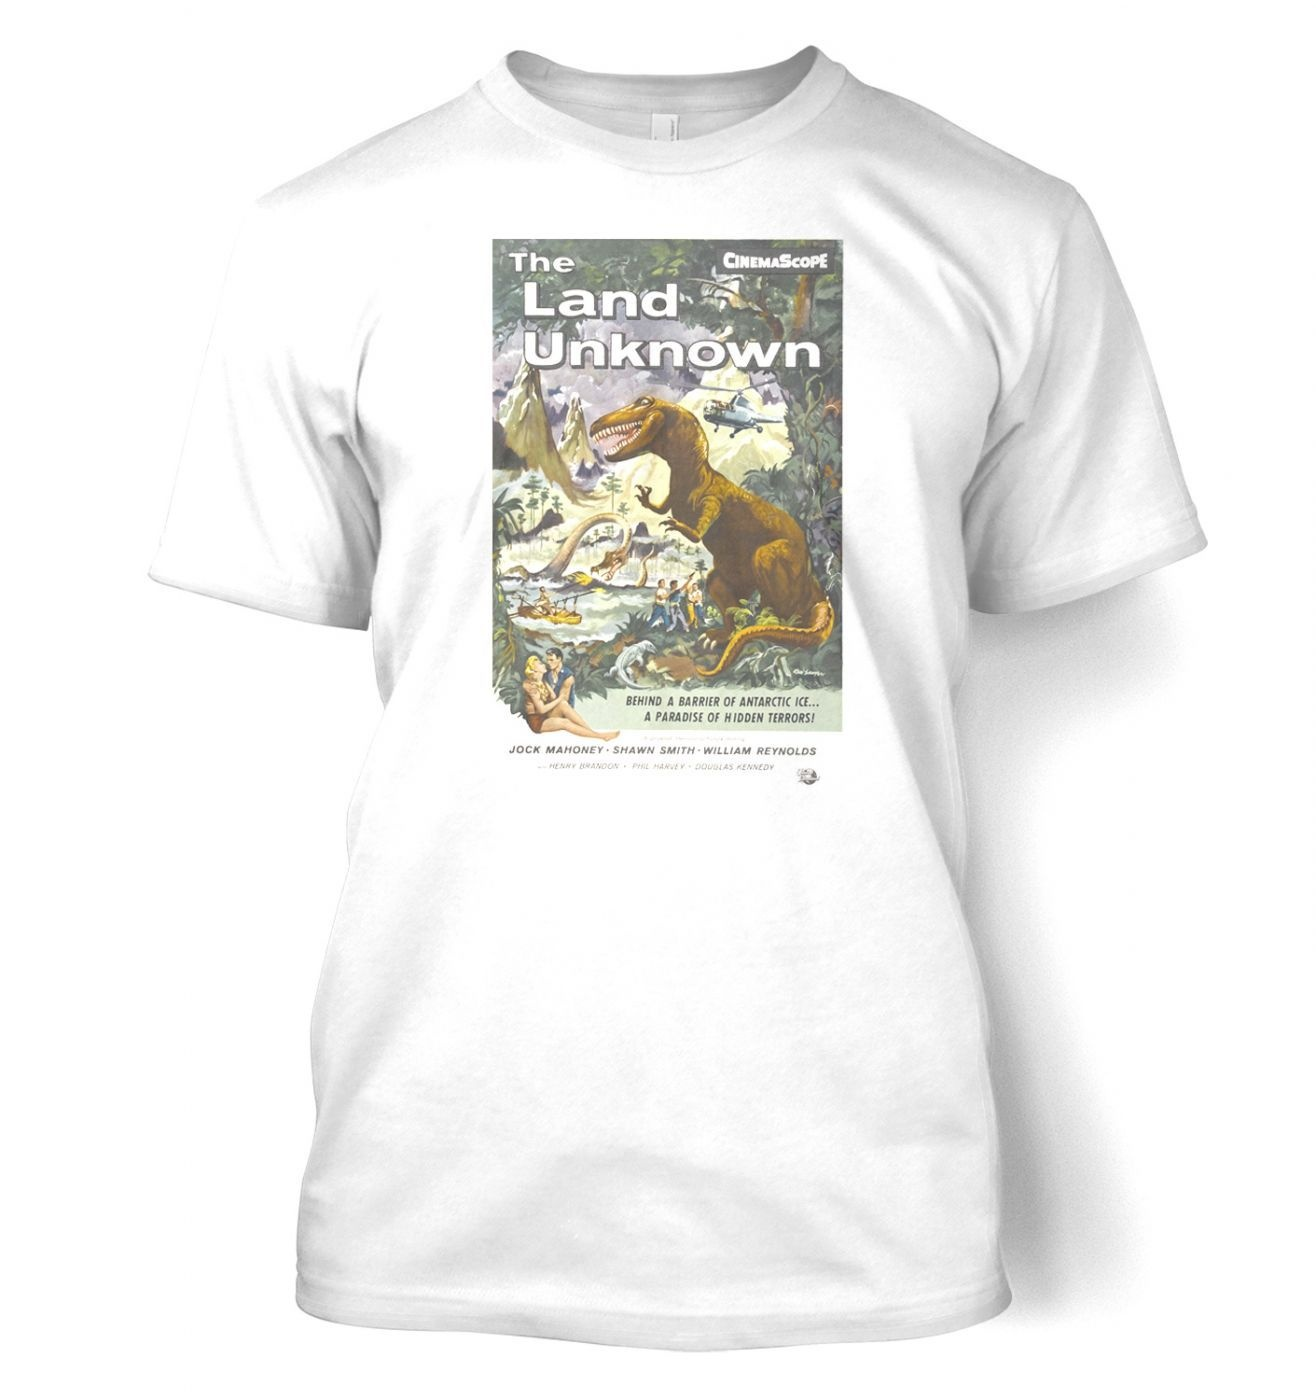 The Land unknown men's t-shirt